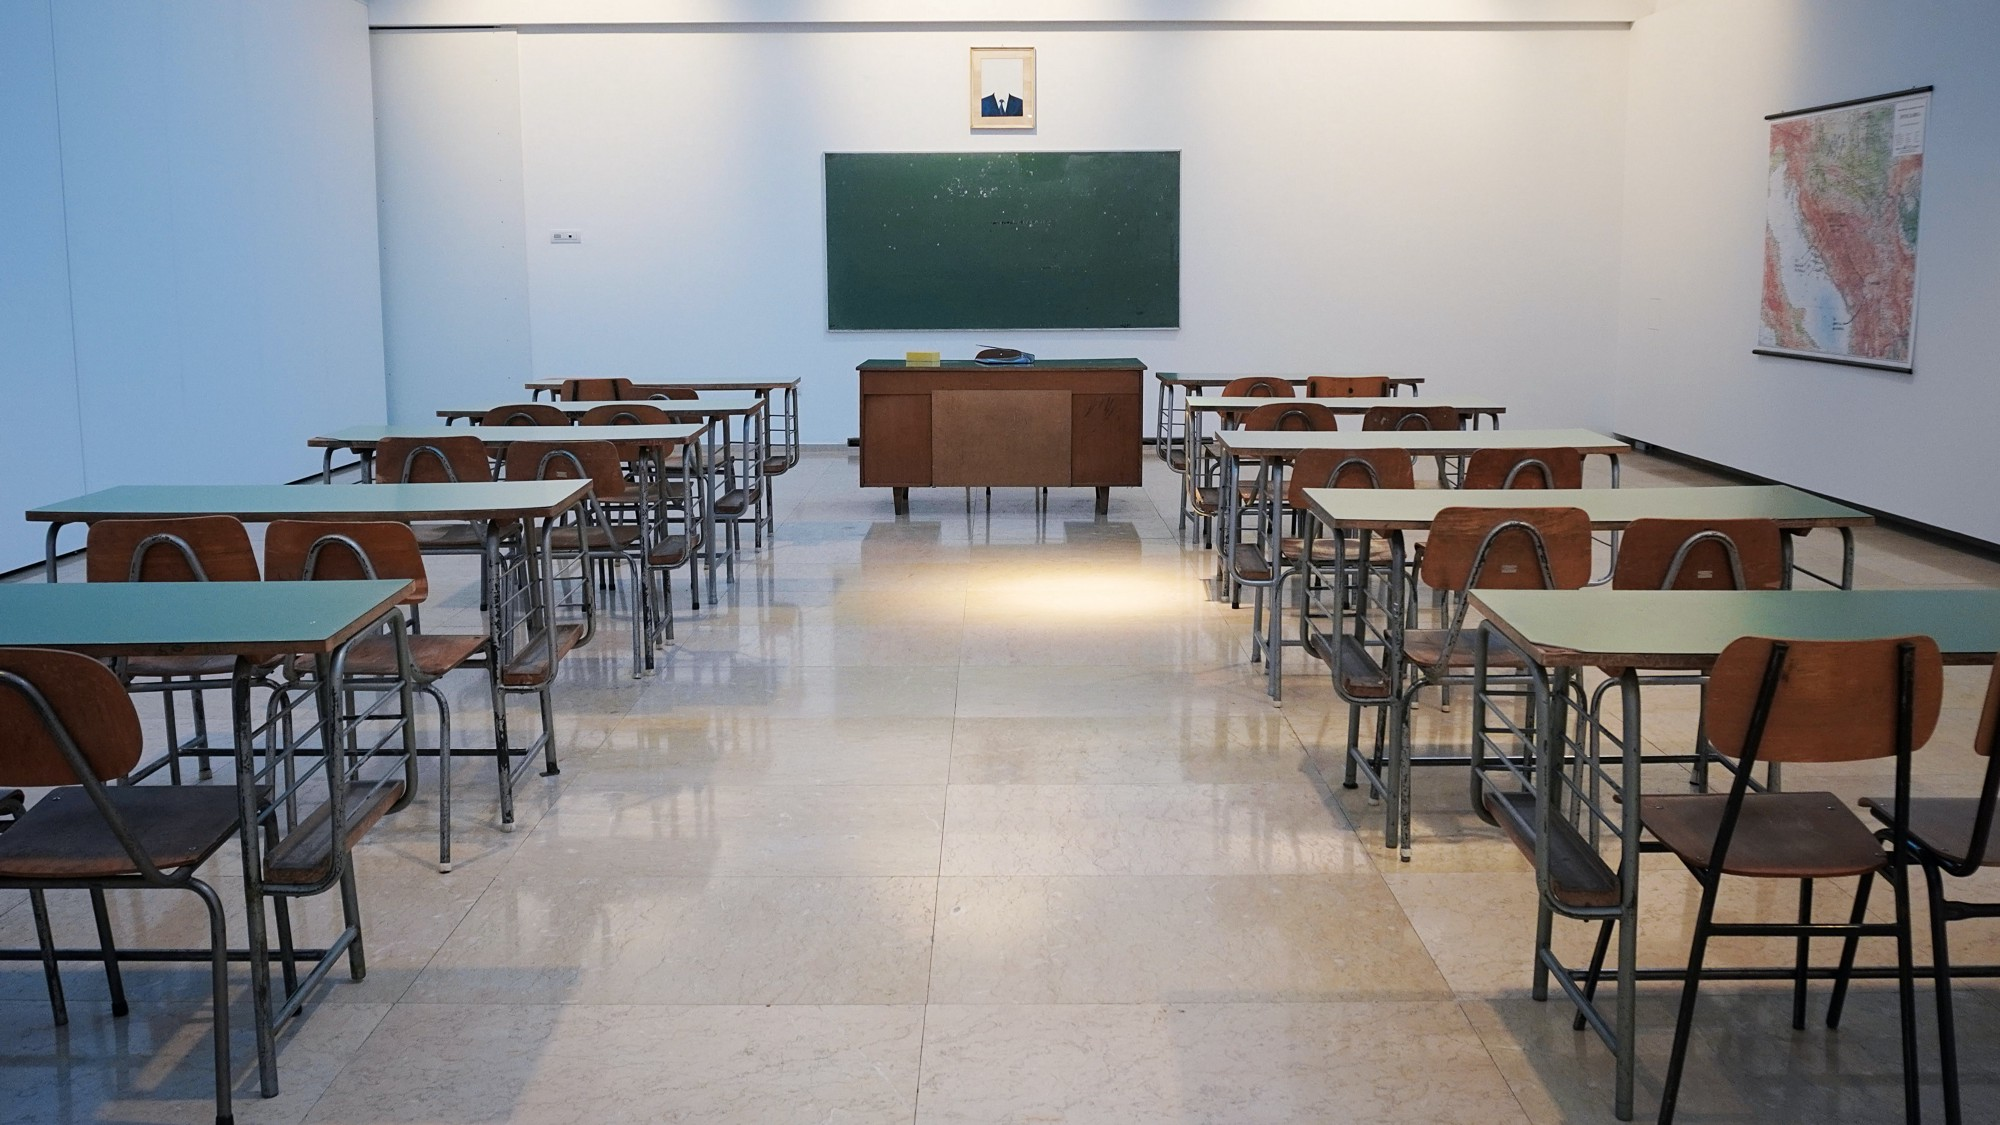 Empty classroom with wooden desks and a green chalkboard.